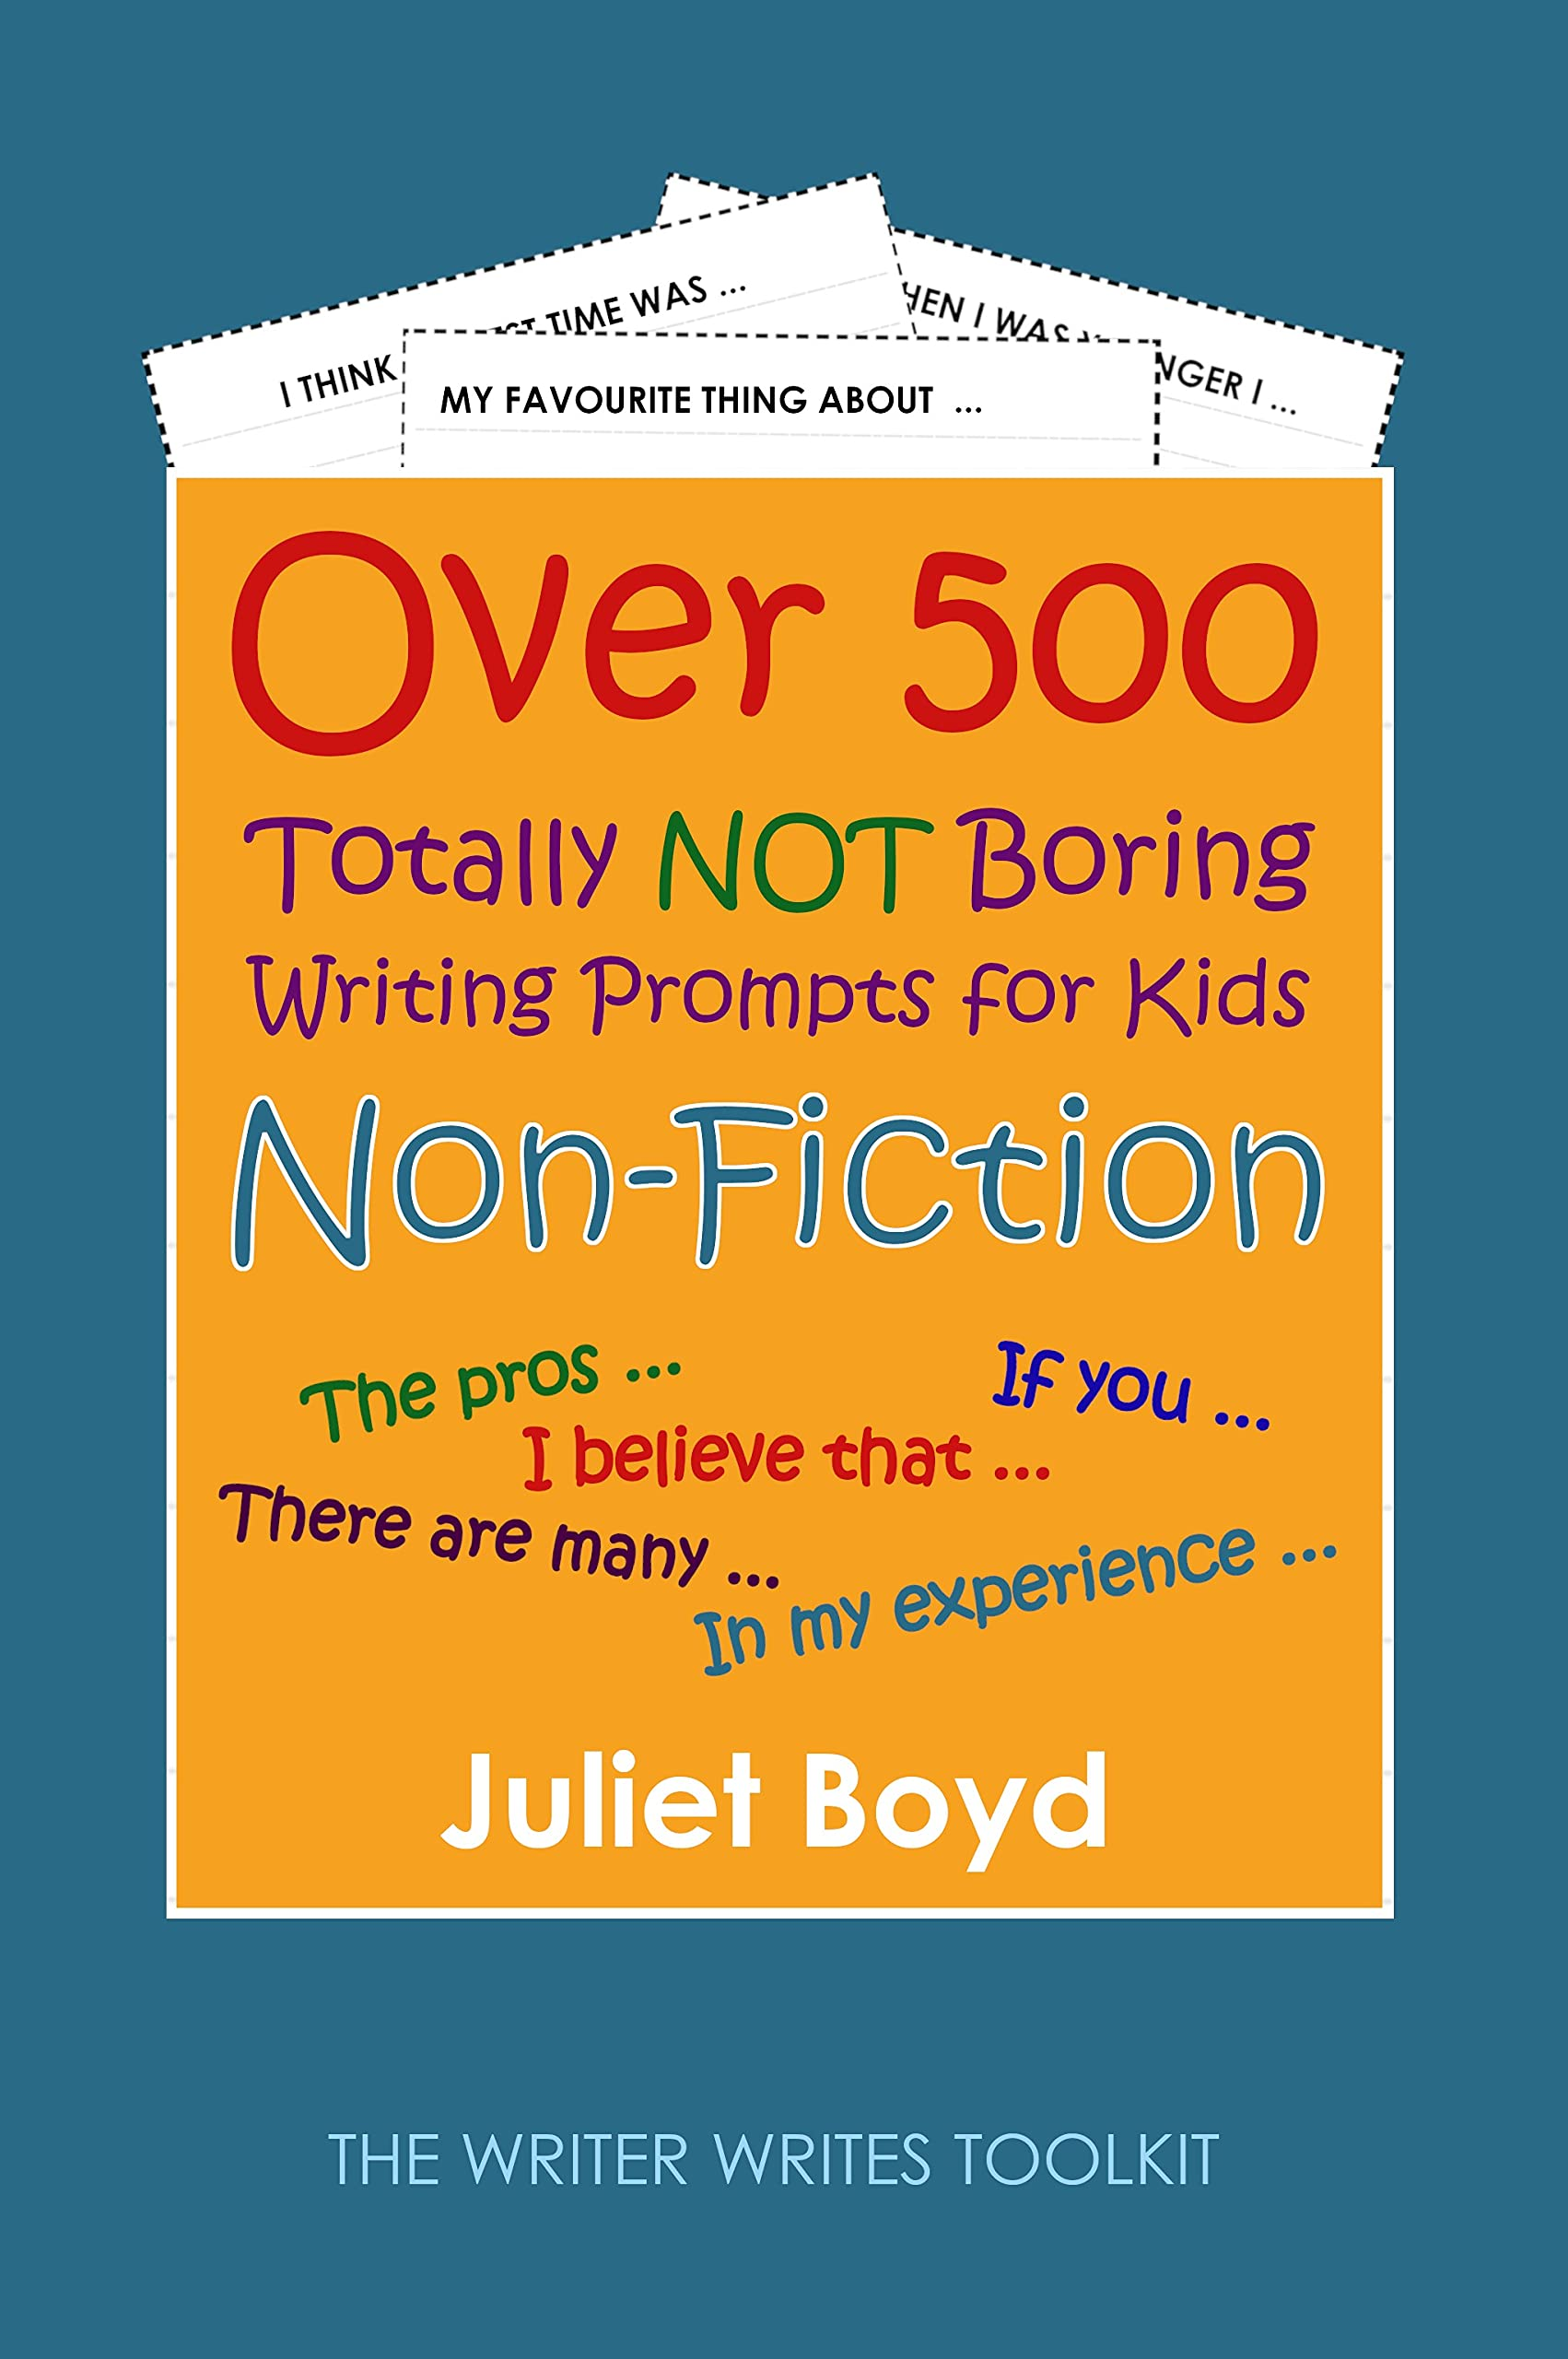 Over 500 Totally NOT Boring Writing Prompts for Kids: Non-Fiction